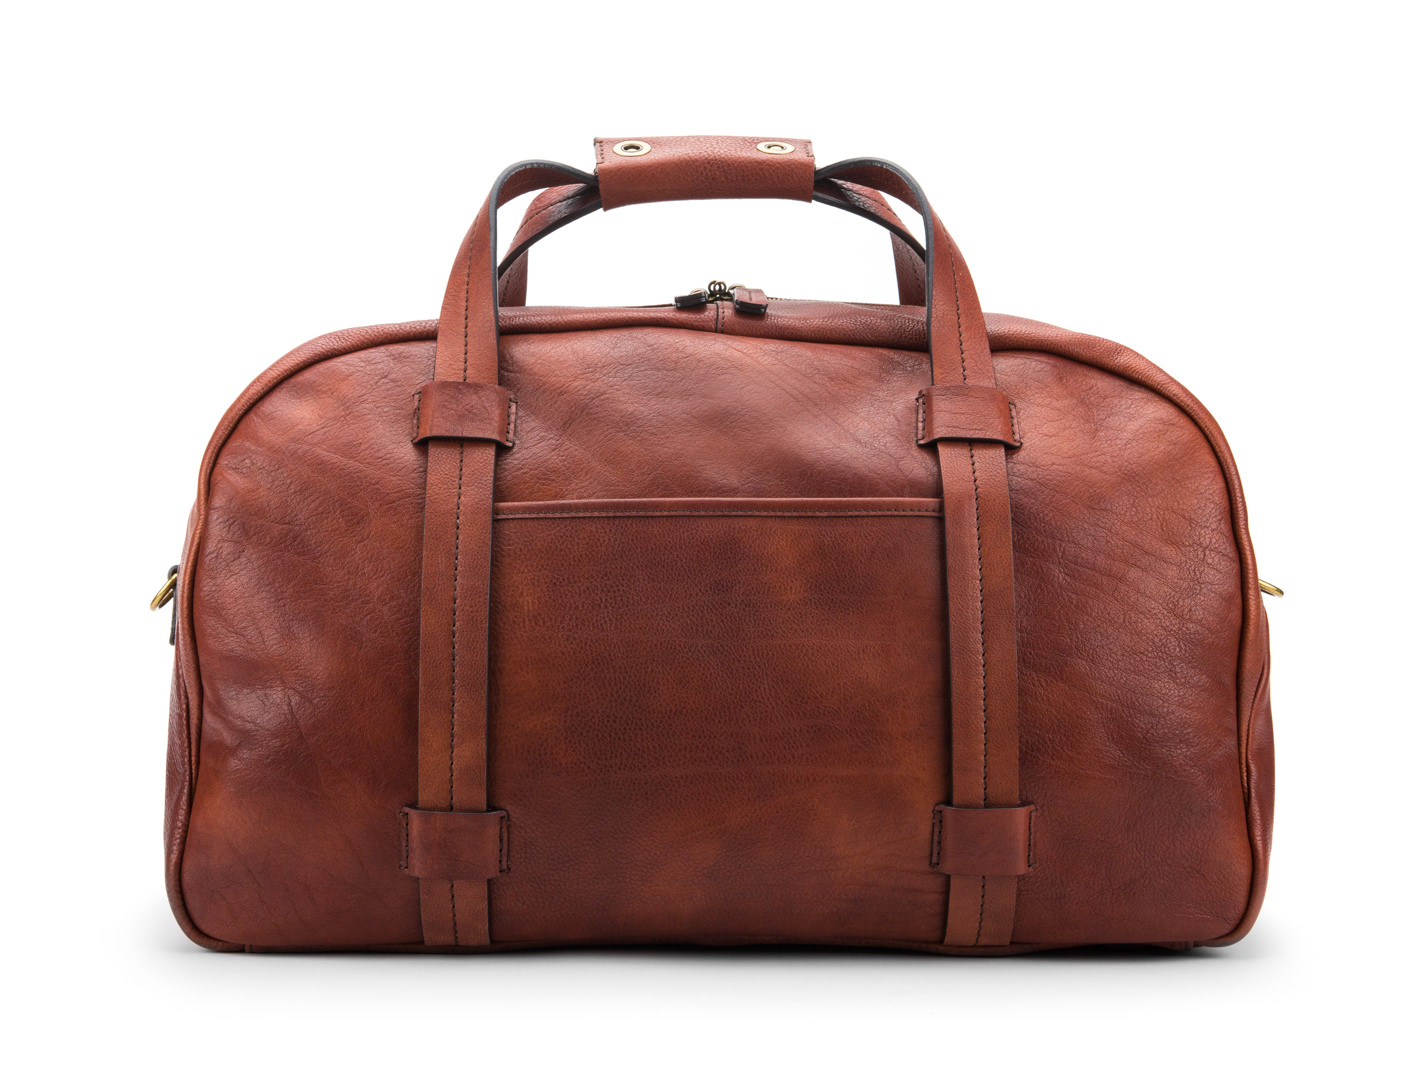 Vintage Duffle-158 Dark Brown - 158 Dark Brown